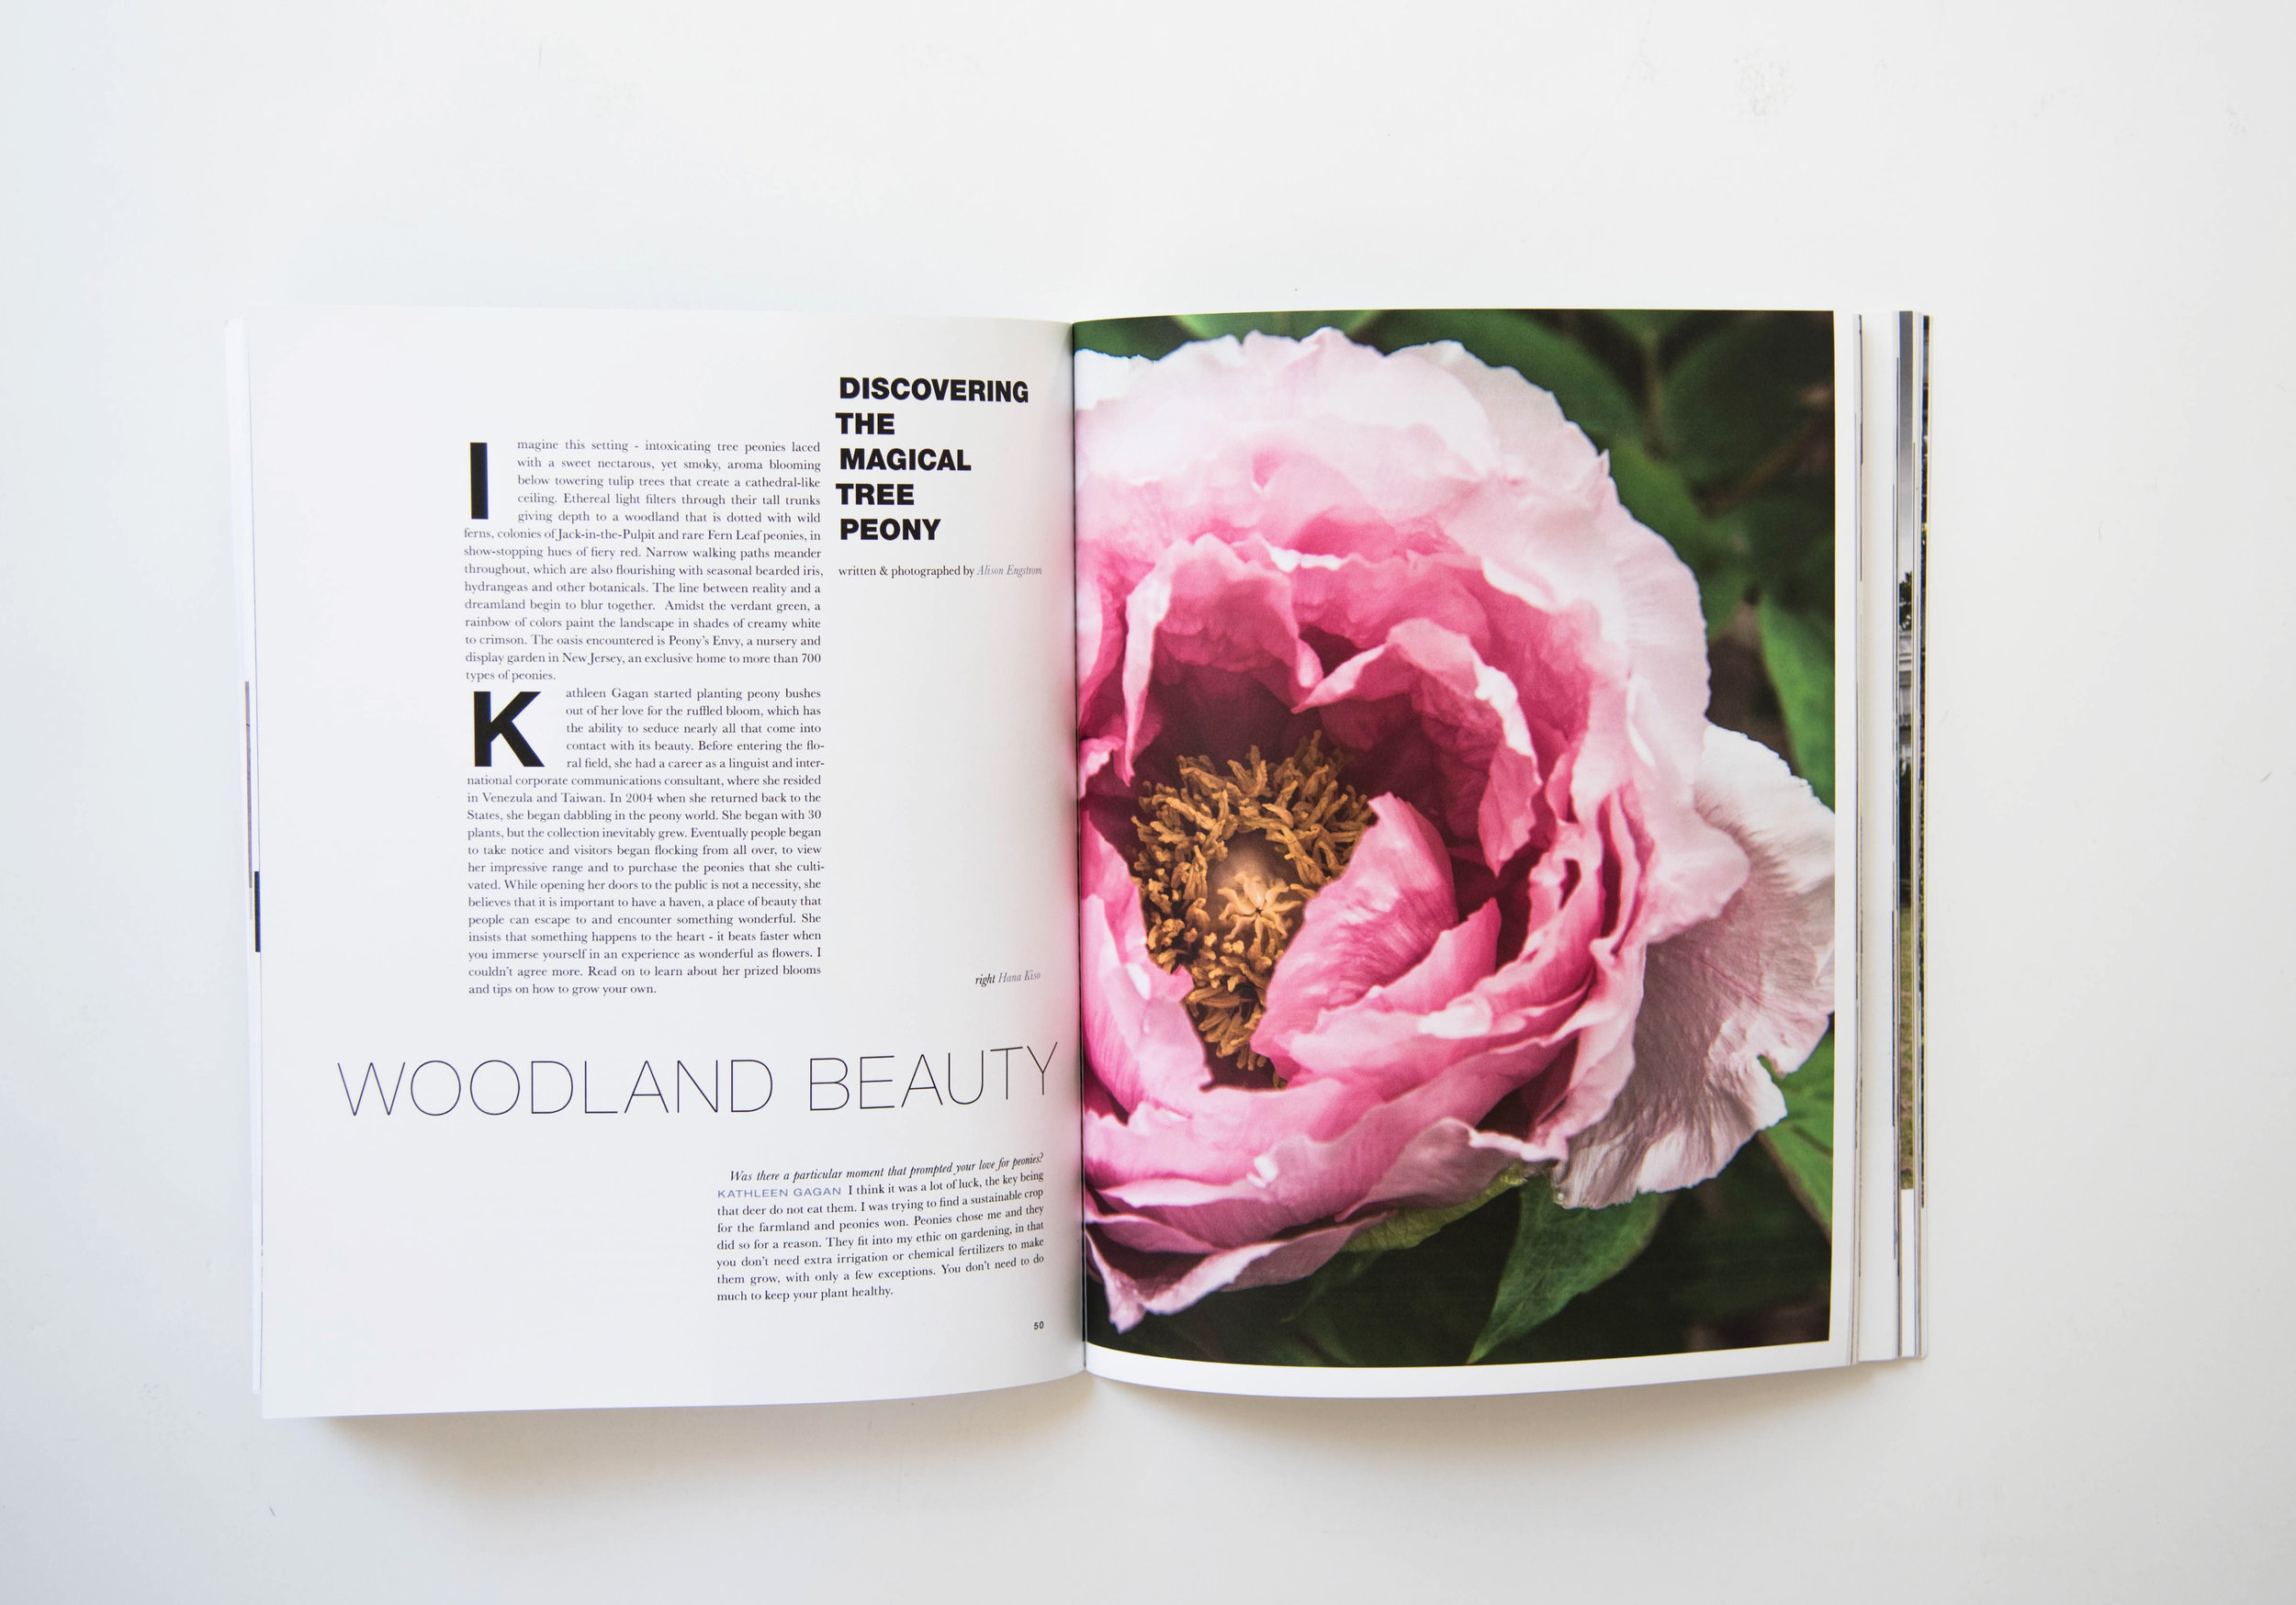 ROSE & IVY Journal Issue No. 06 Now In Print!